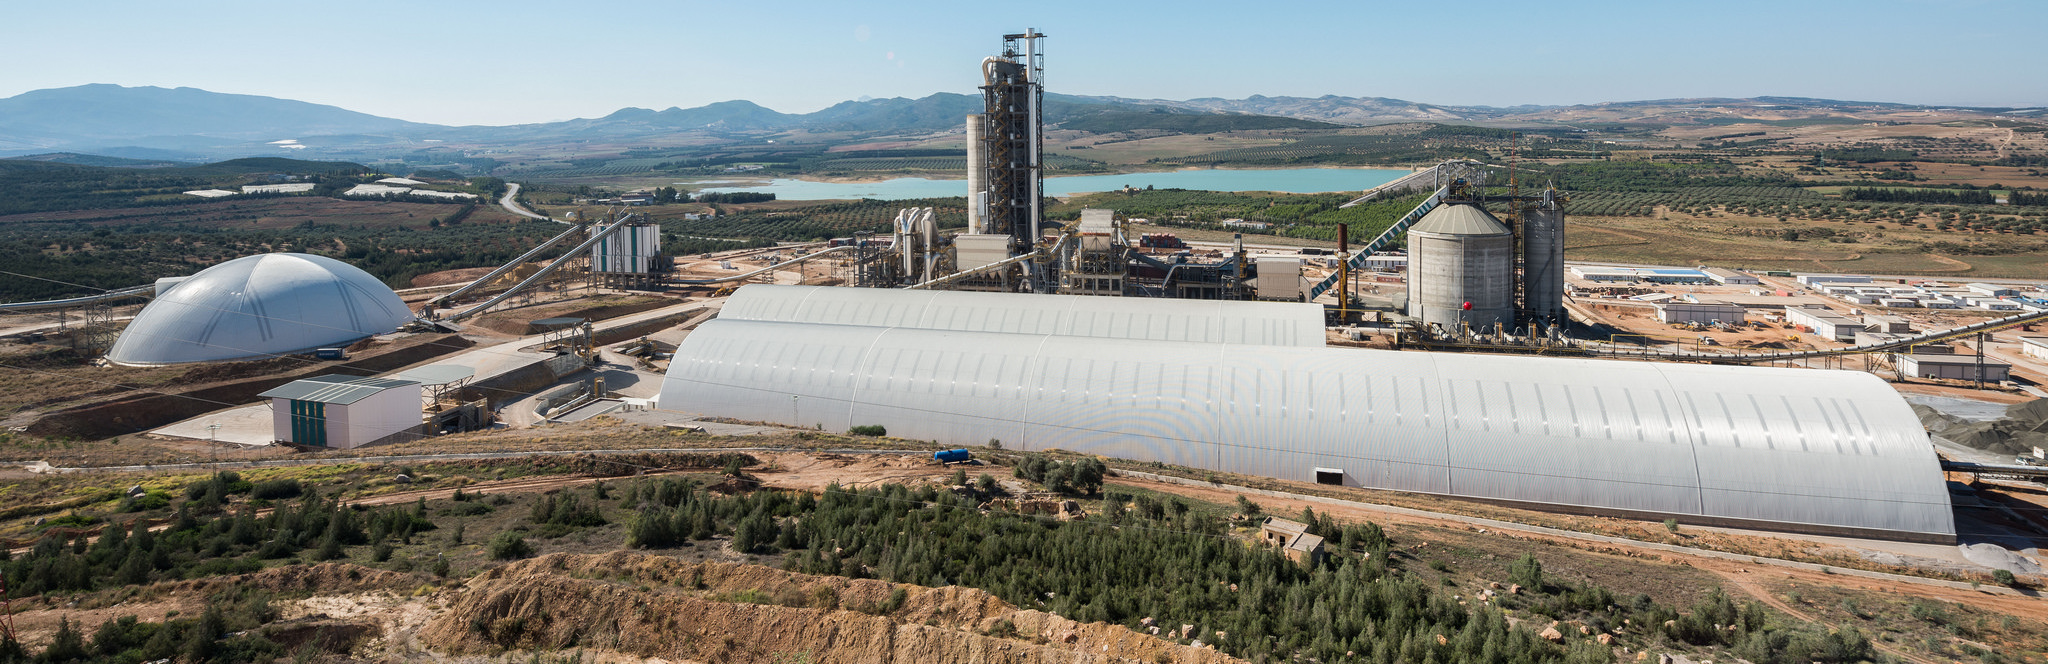 In the case of Tunisia's largest and most technologically advanced cement plant, Geometrica supplied three structures for additives, coal, and limestone. The bulk storage structures contain the dust from stacking and blending of raw materials and fuel, helping meet the plant's environmental goals.